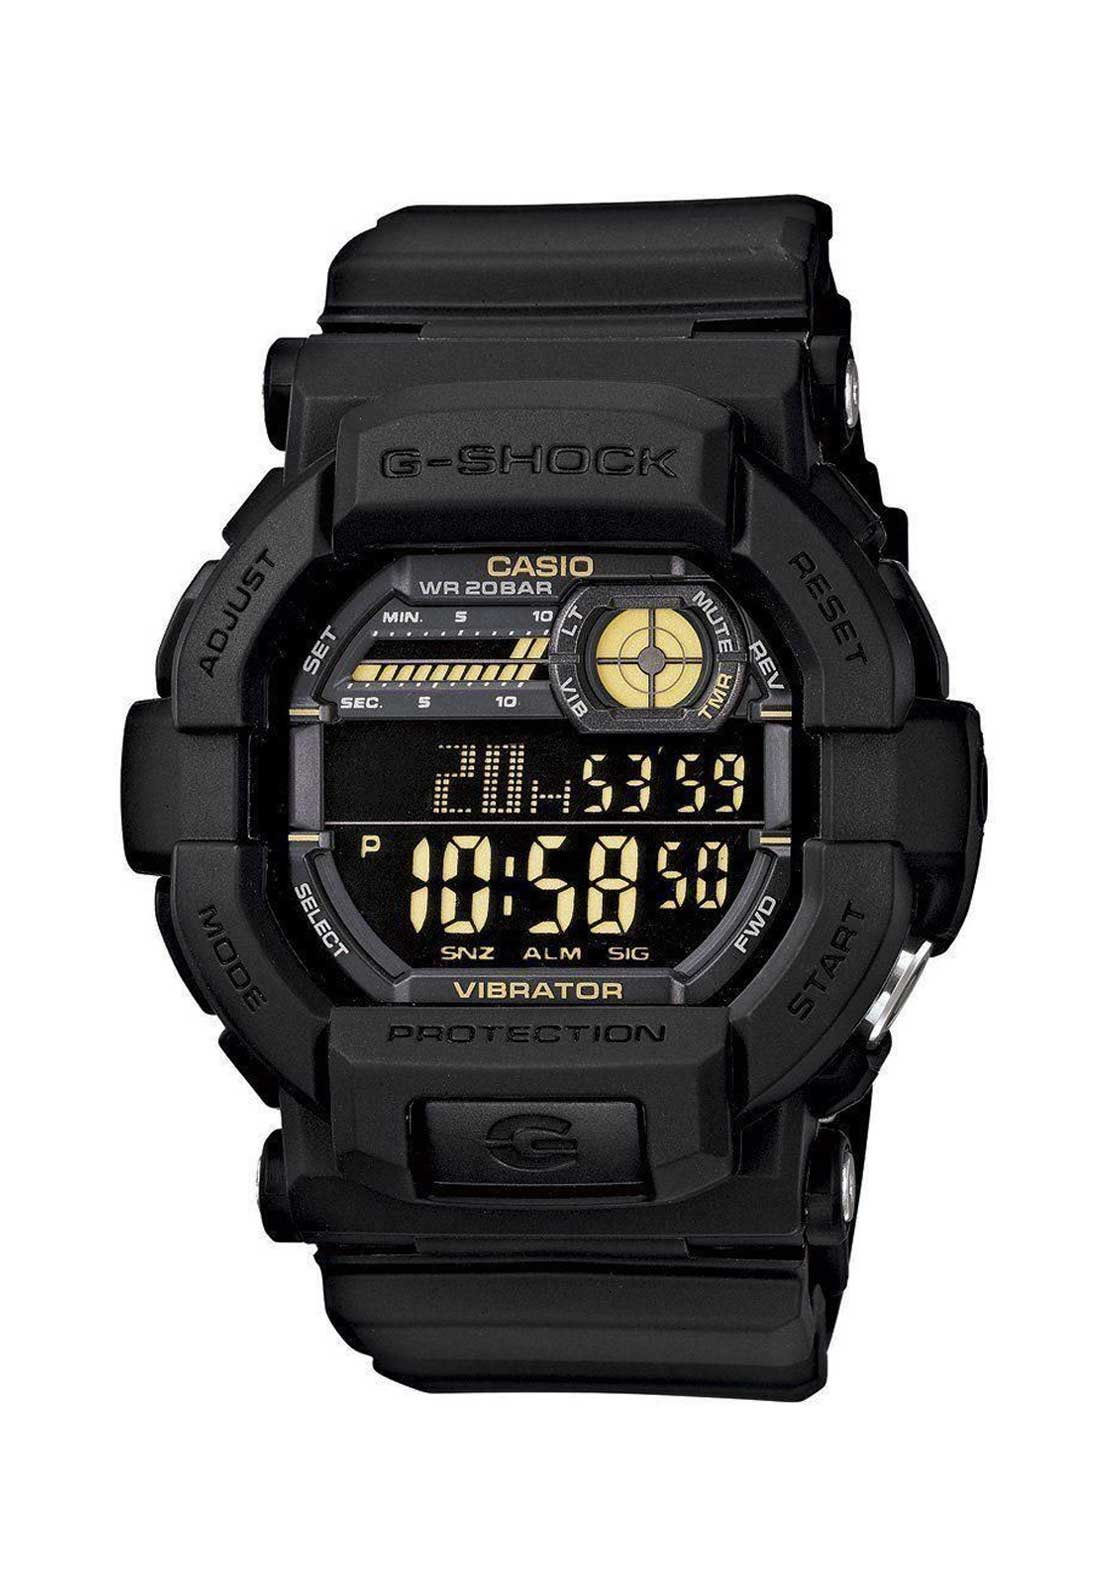 Casio Mens G Shock Alarm Chronograph Watch, Black